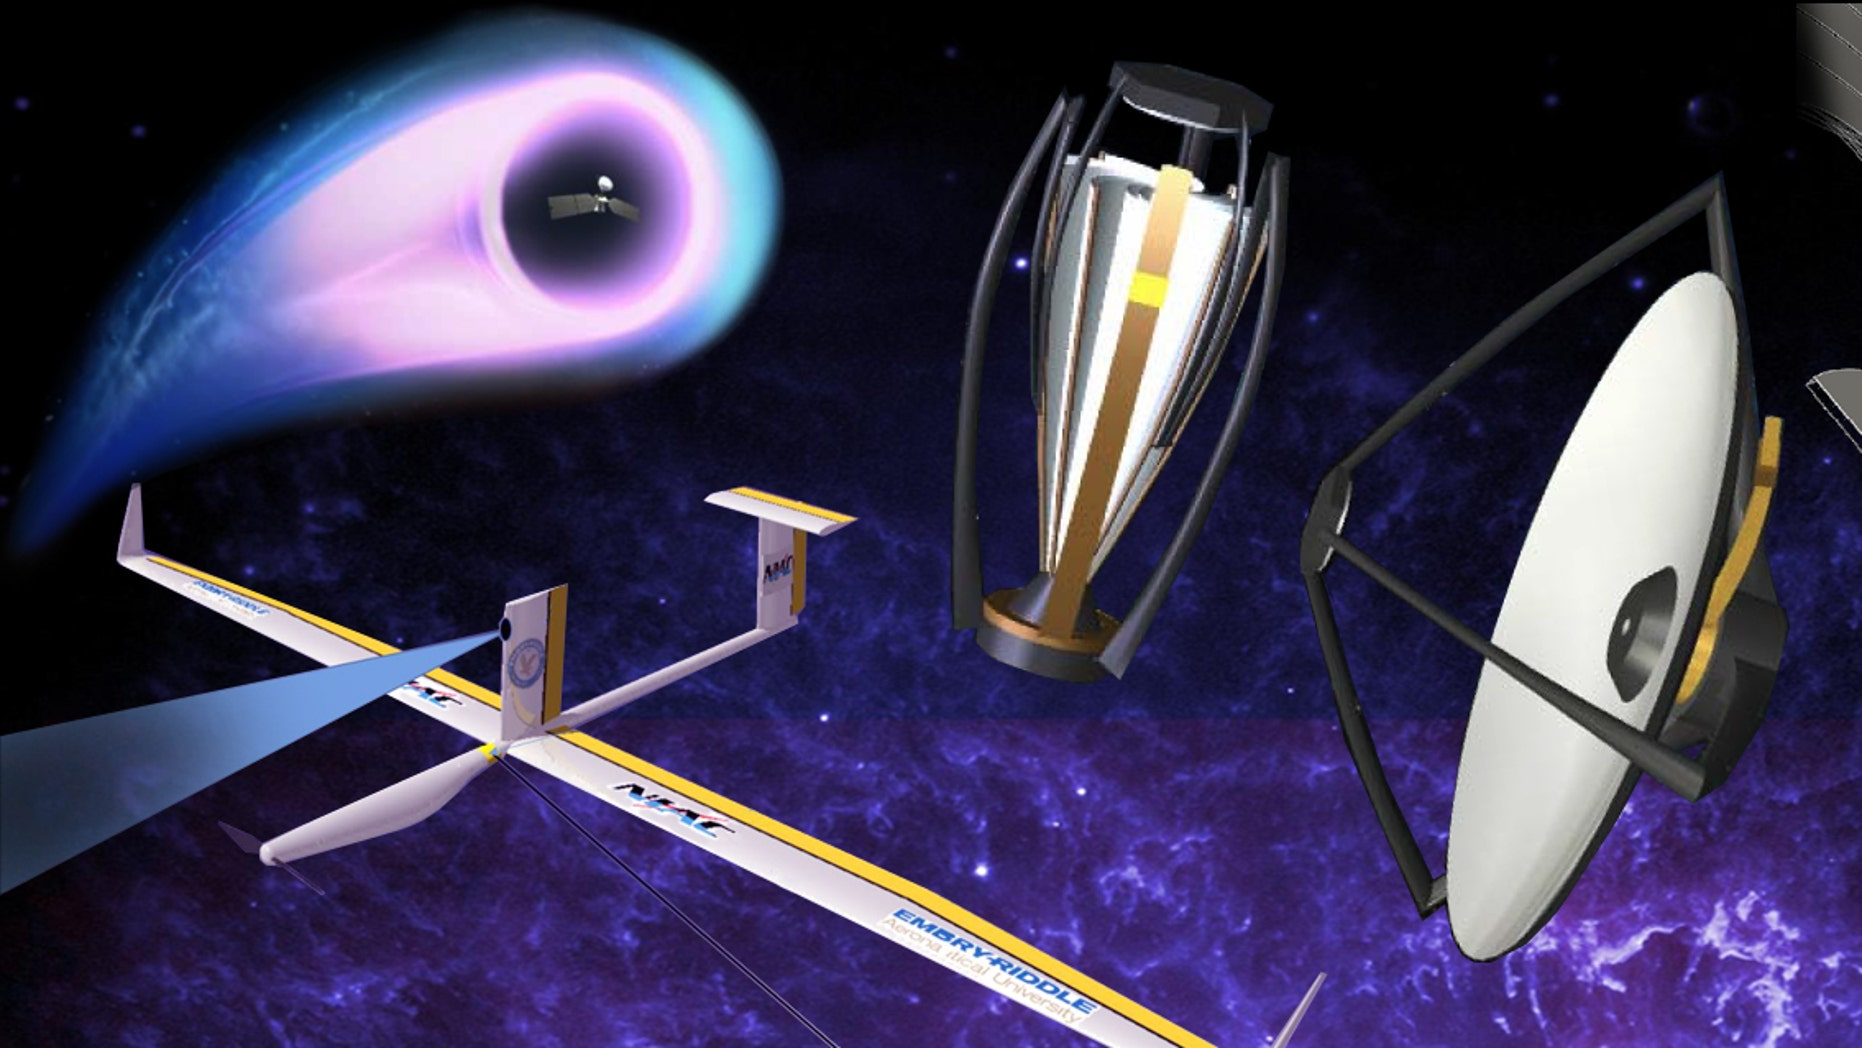 Eight studies have received funding under Phase 2 of the NASA innovative Advanced Concepts program, including a proposal to blast tiny spacecraft to other star systems using powerful lasers.